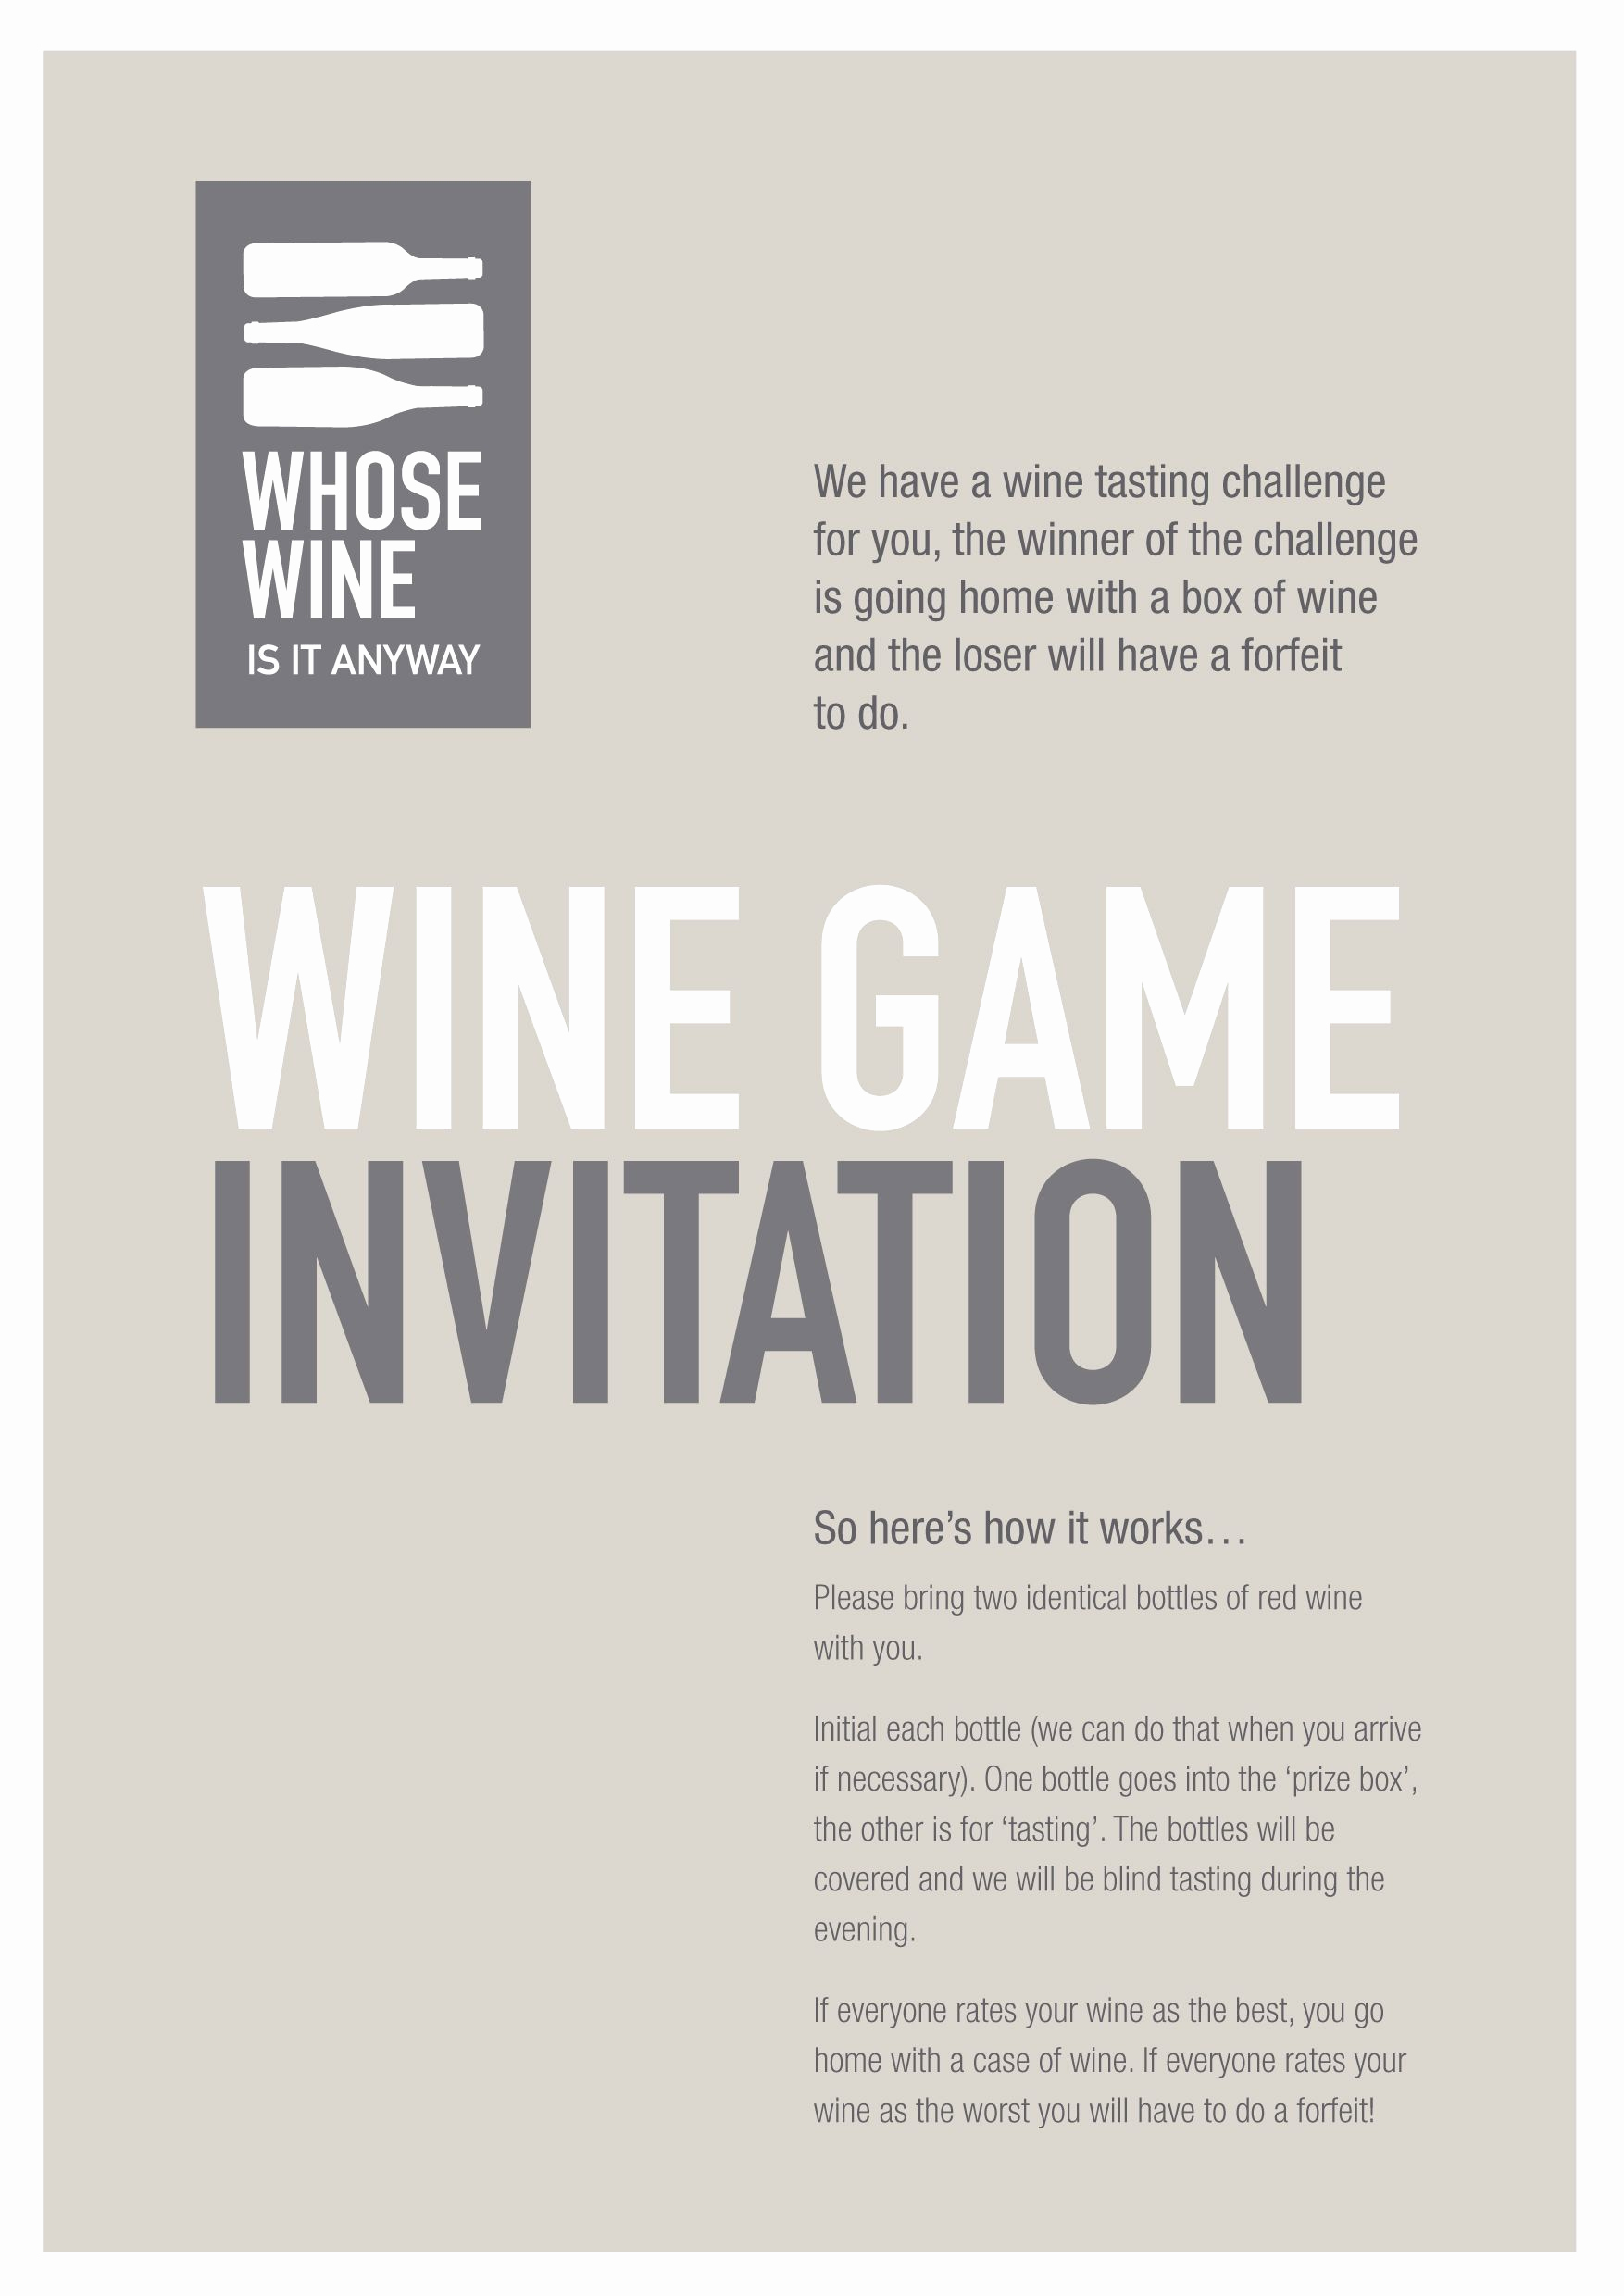 Wine Tasting Invitation Wording Unique Exceptional Wine Tasting Party Invitation Wording 9 as